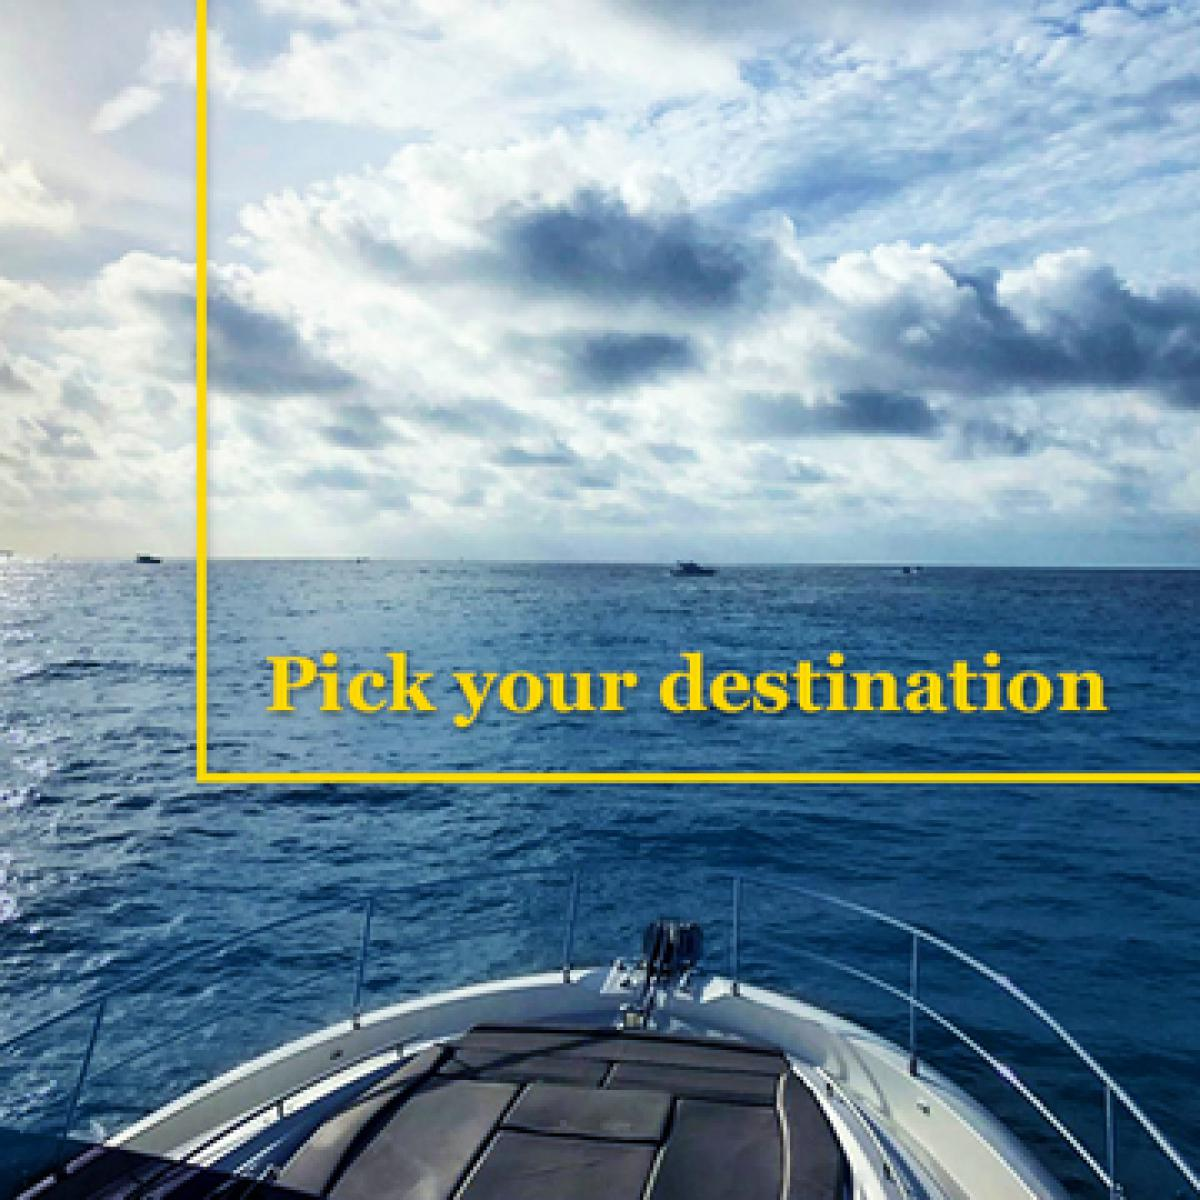 Image 0499: Pick your destination